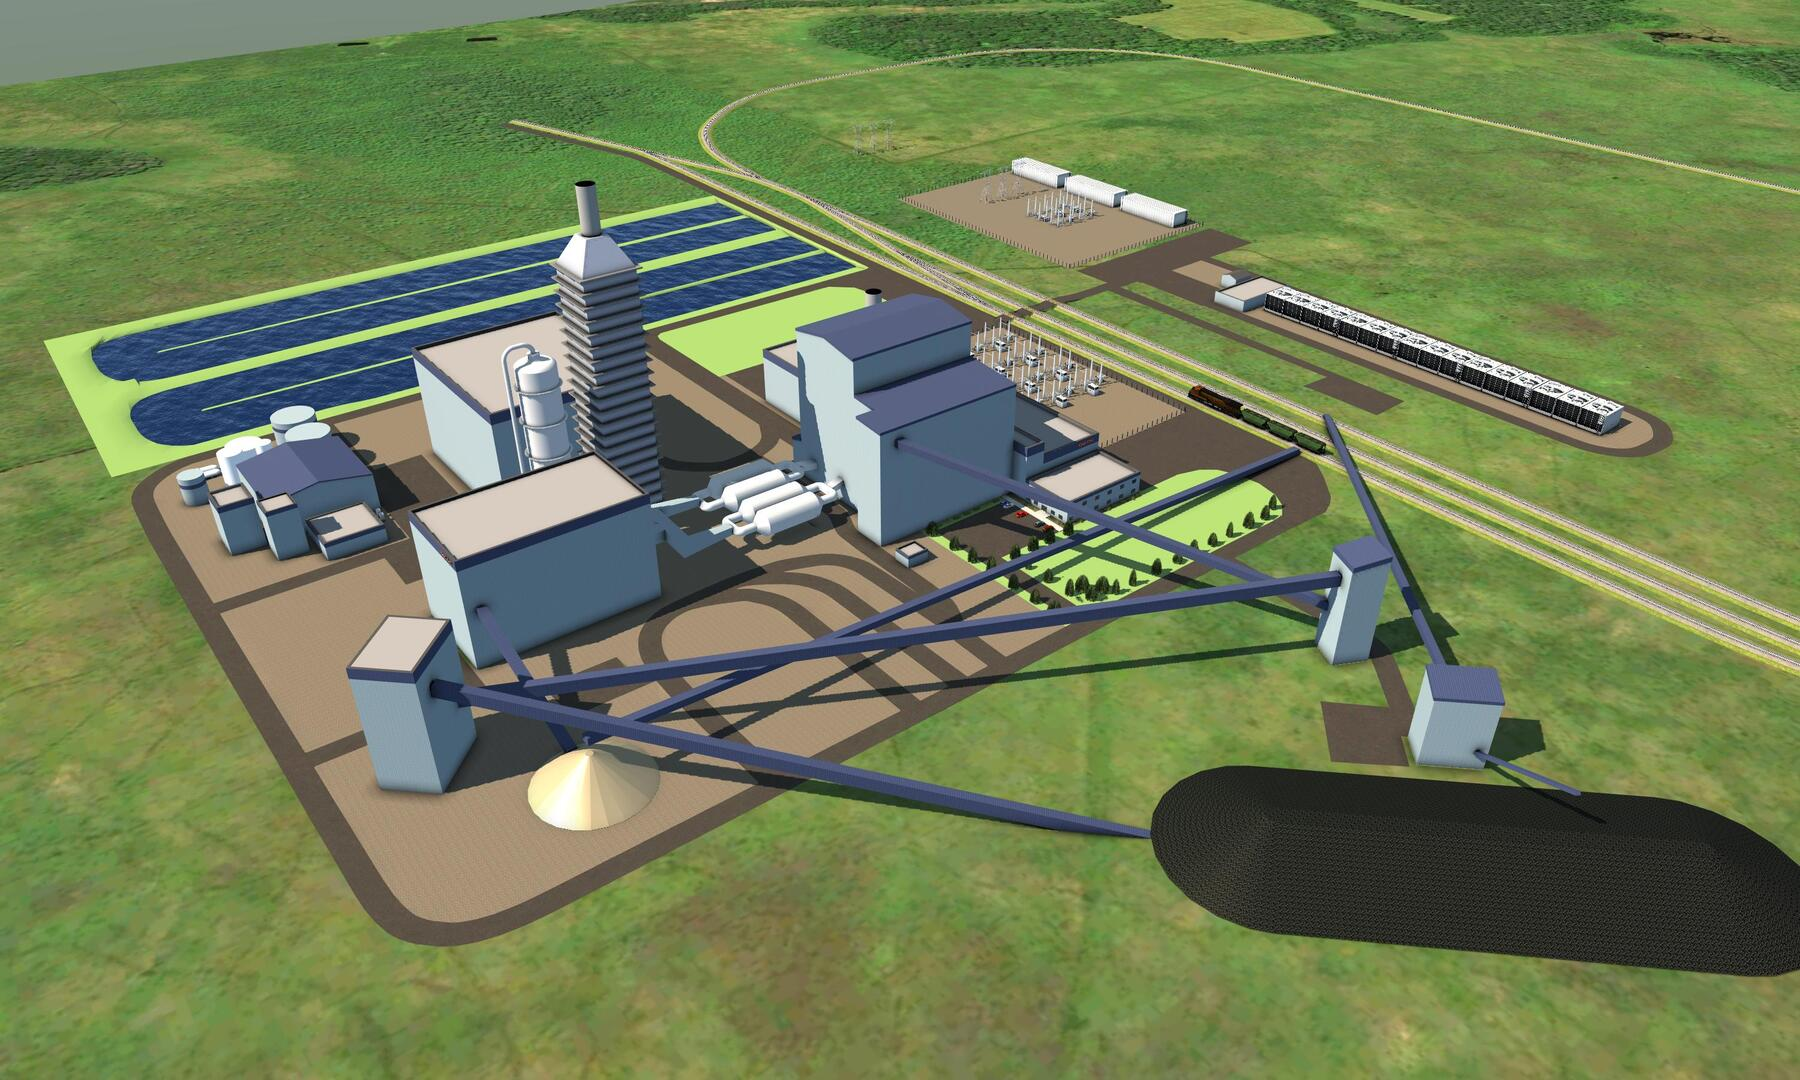 rendering of the proposed innovative power plant